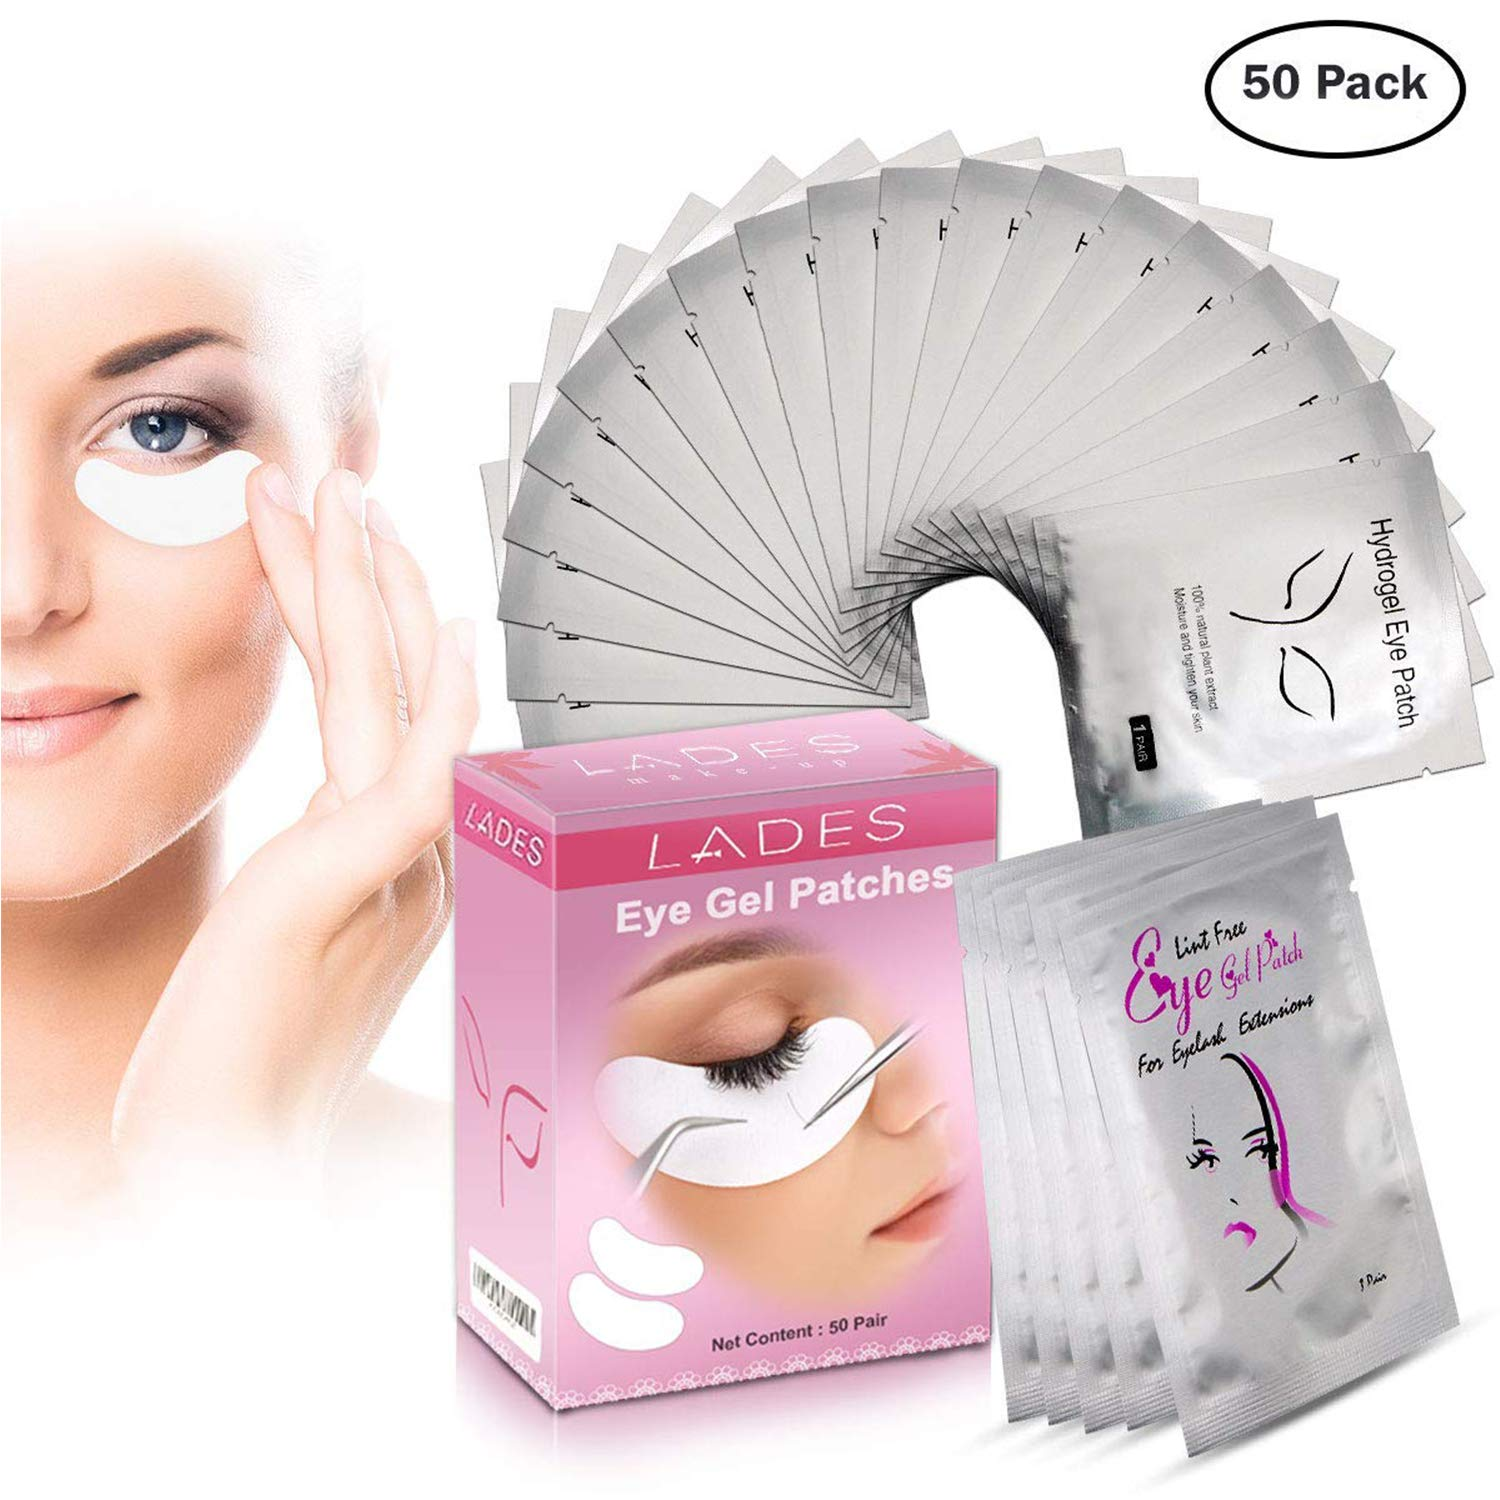 Tools & Accessories Trend Mark 100 Pairs/box Samll Size Eye Pads For Eyelash Extension Lint Free Eye Gel Patches Gold Bag Eye Sticker Make Up Tools Be Novel In Design